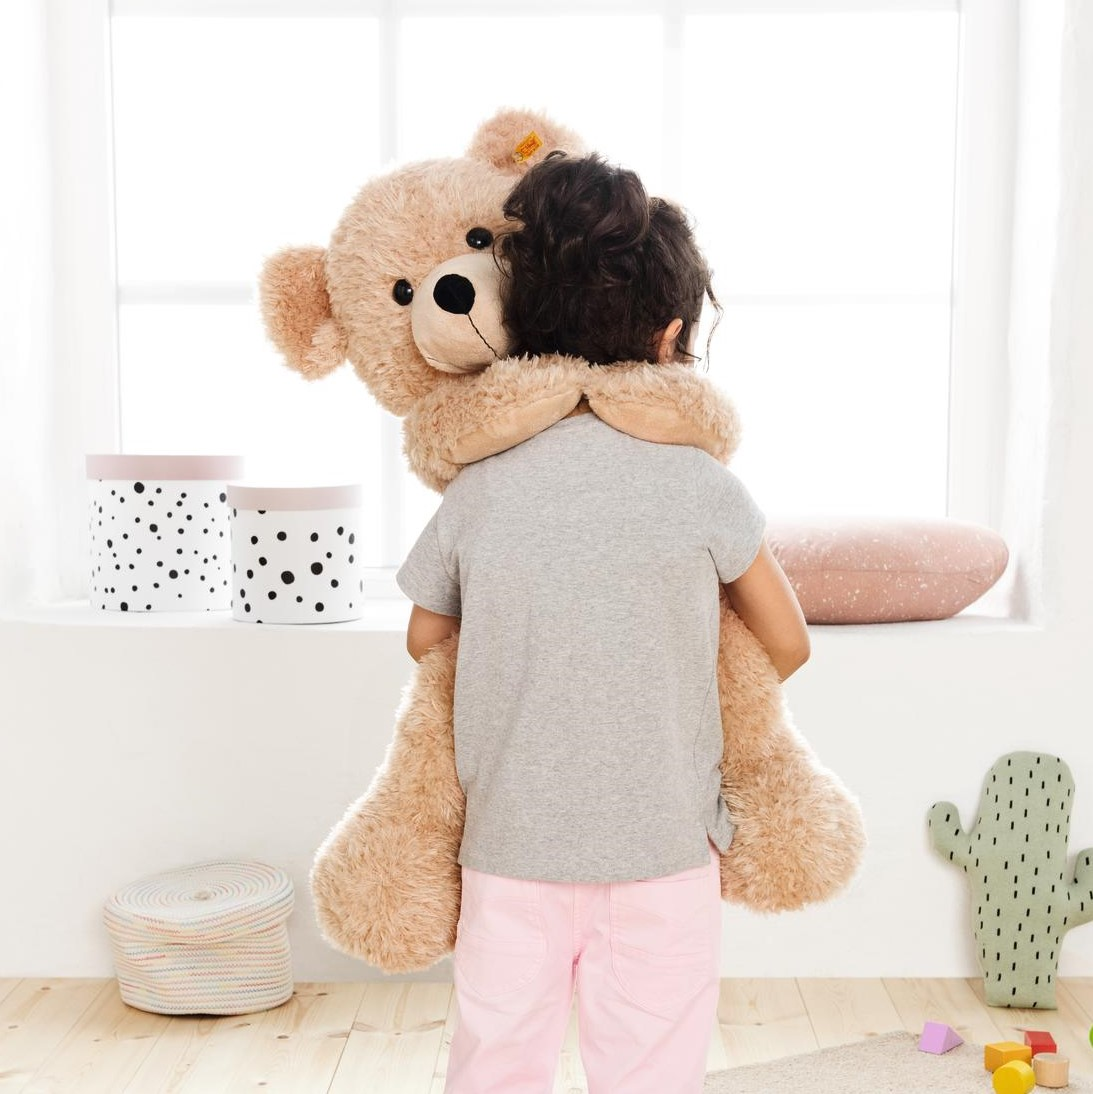 111389-steiff-teddy-bears-for-kids.jpg